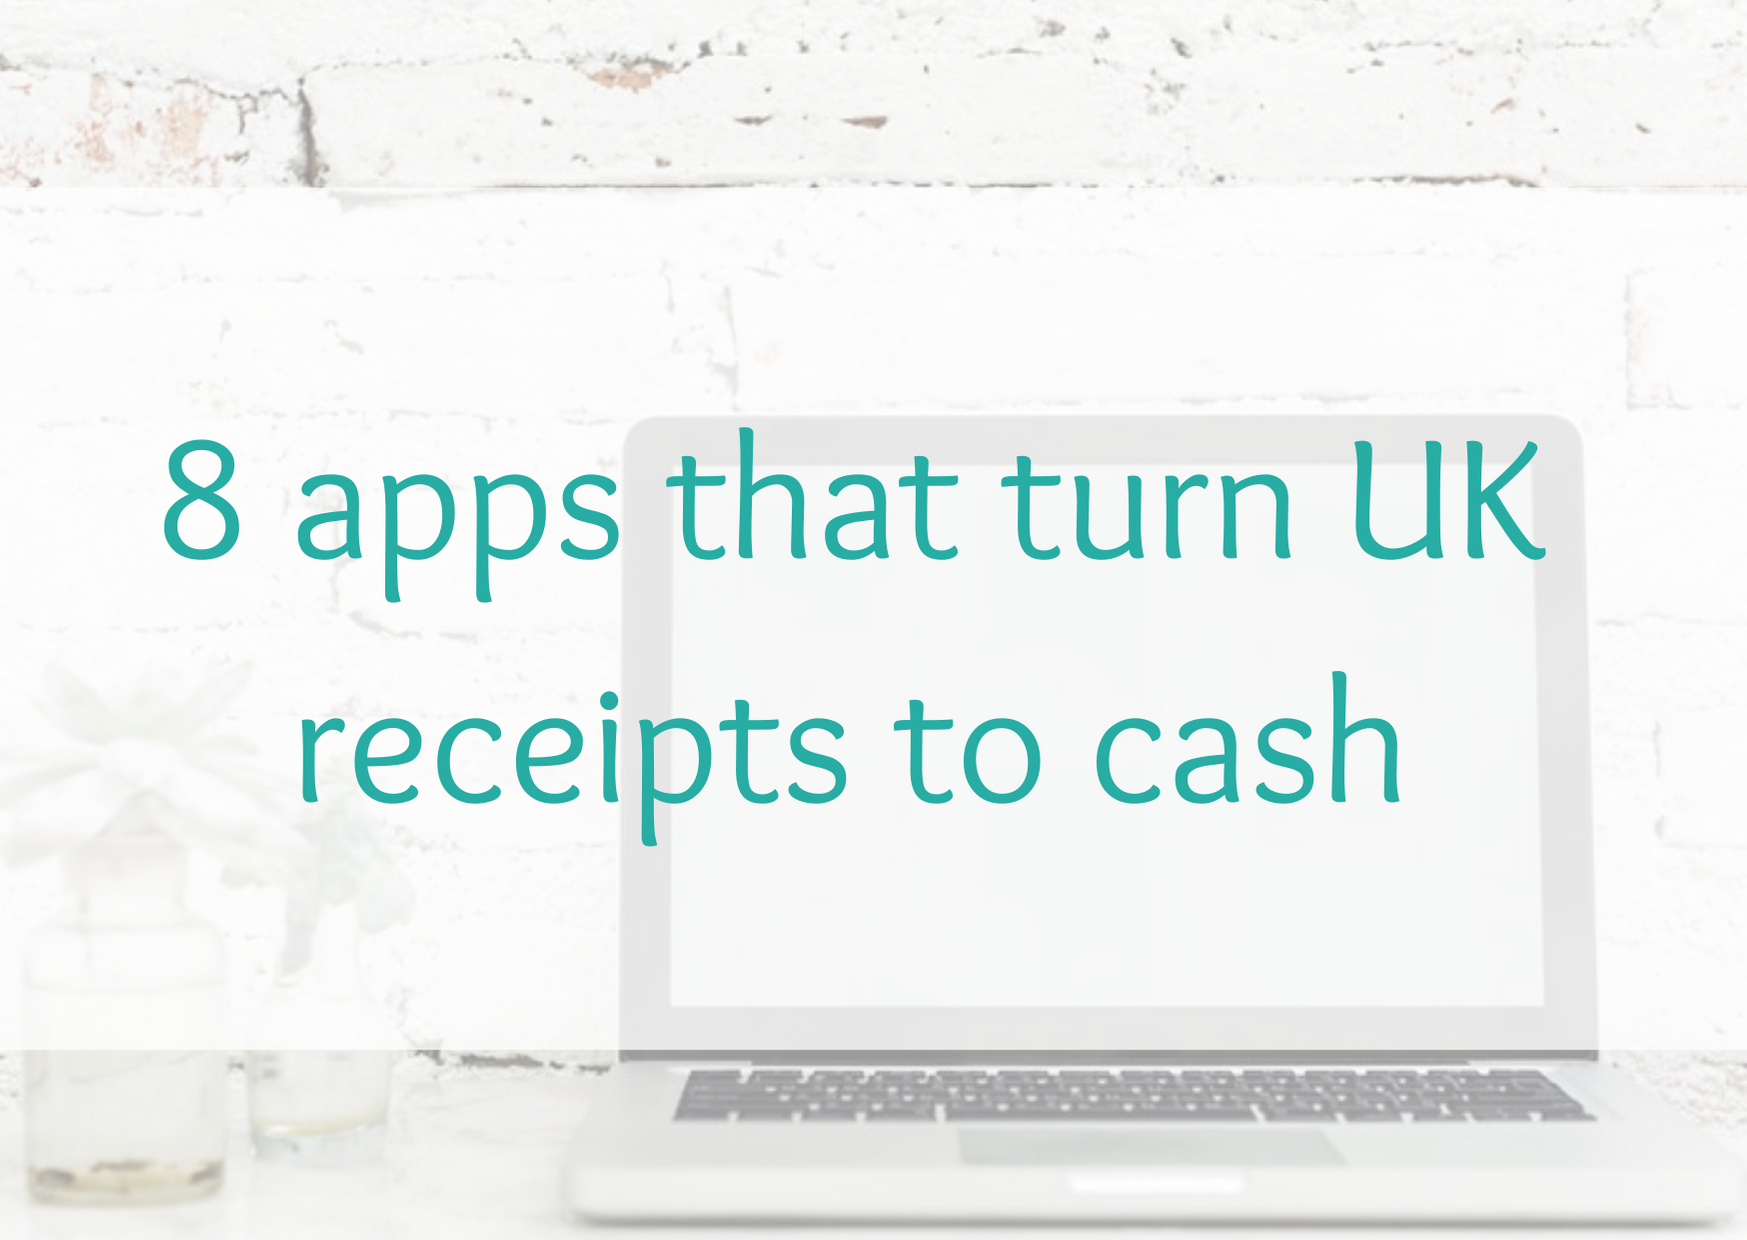 8 apps that turn UK receipts to cash